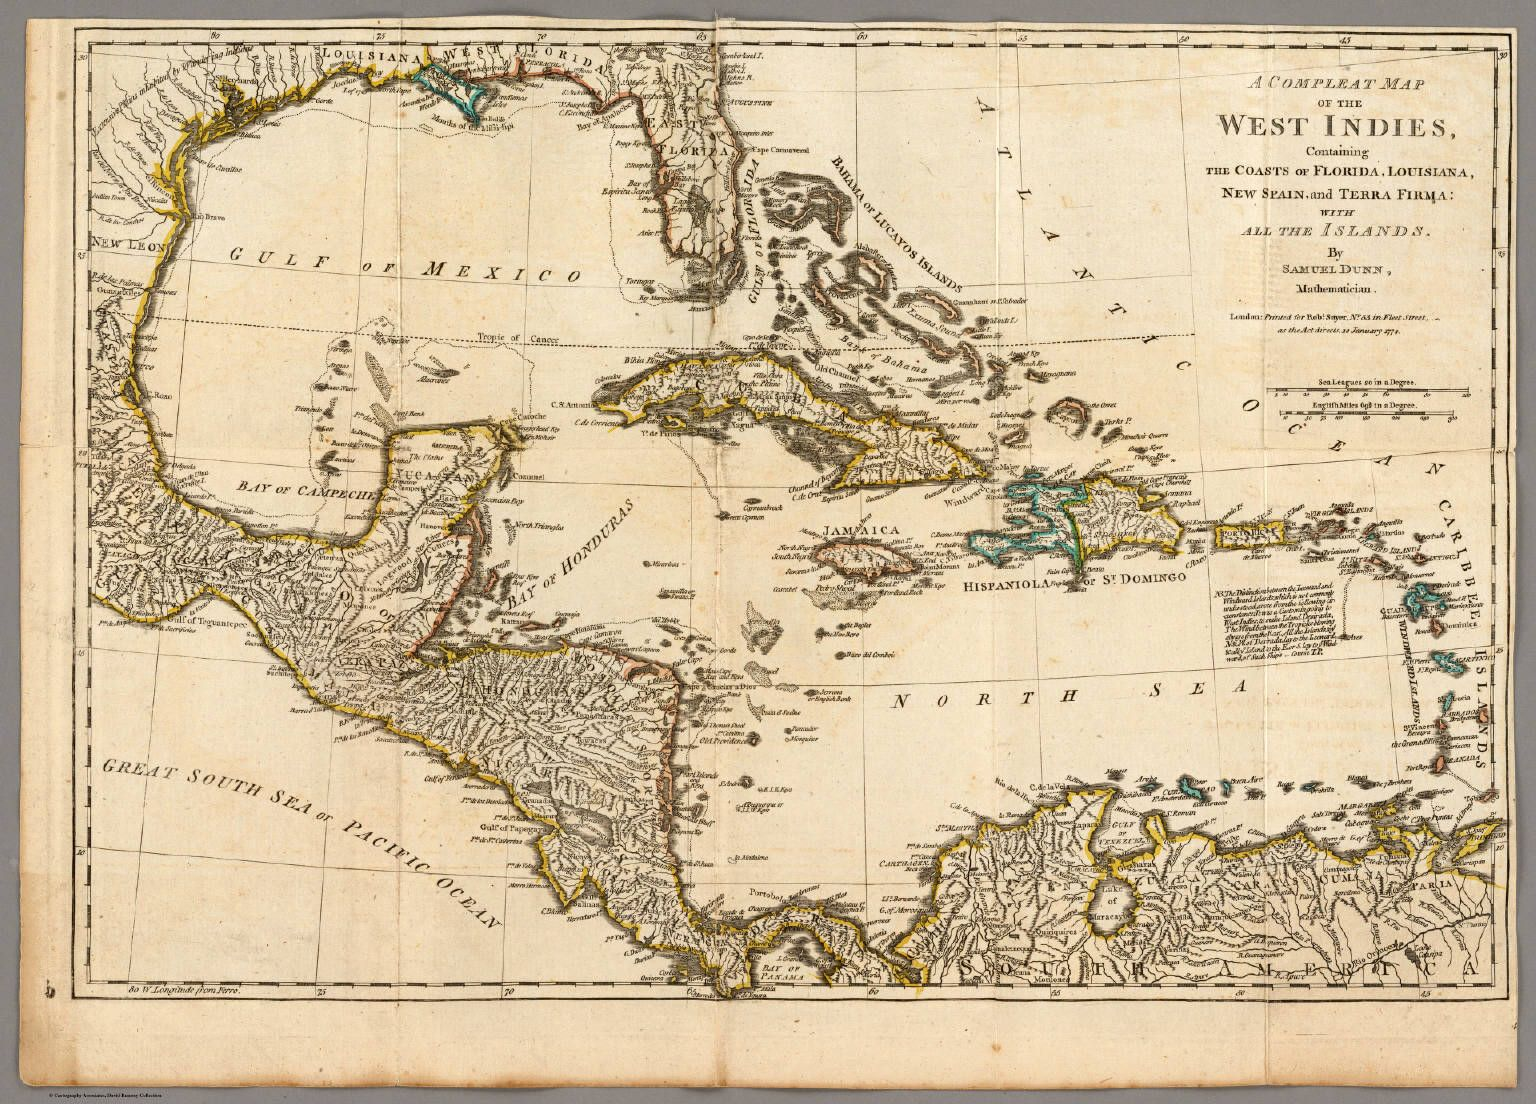 west indies map | West Indies | Pinterest | West indies, Map and ...